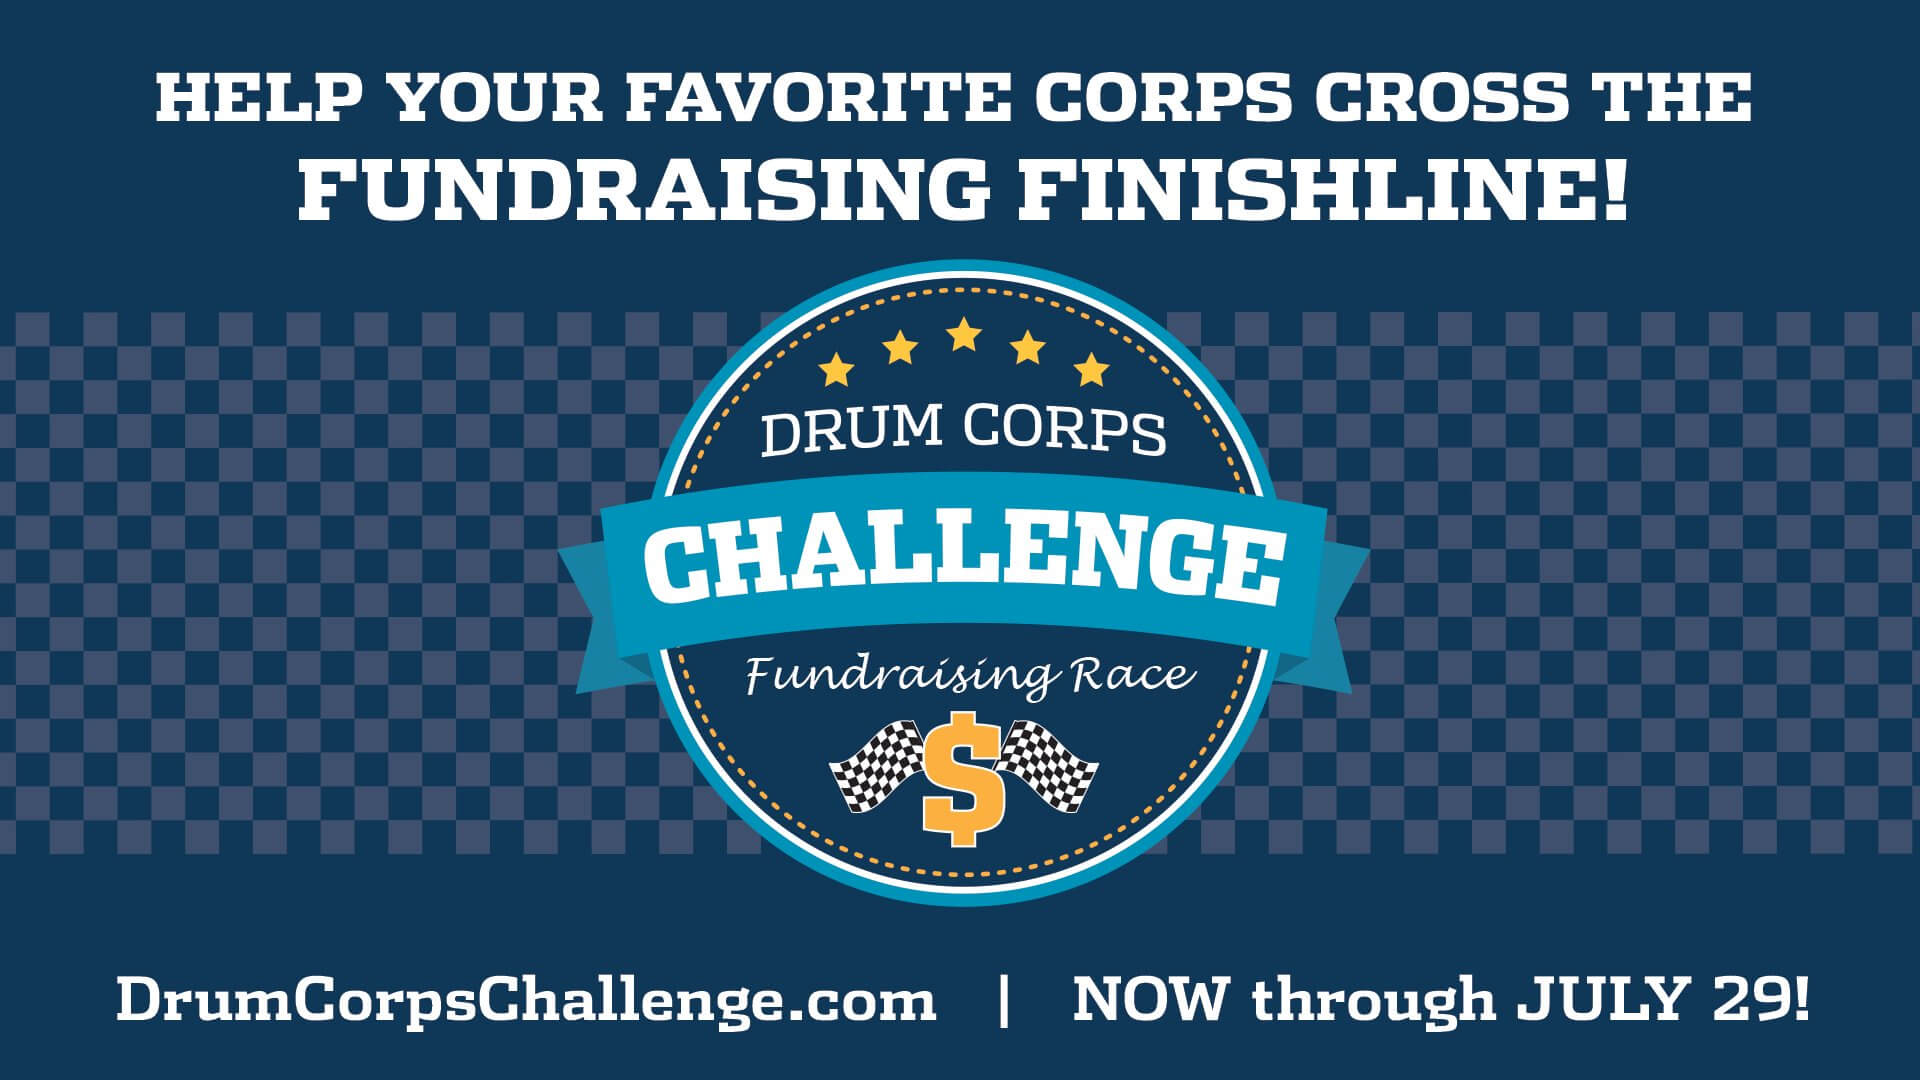 Corps vs. corps fundraising challenge returns